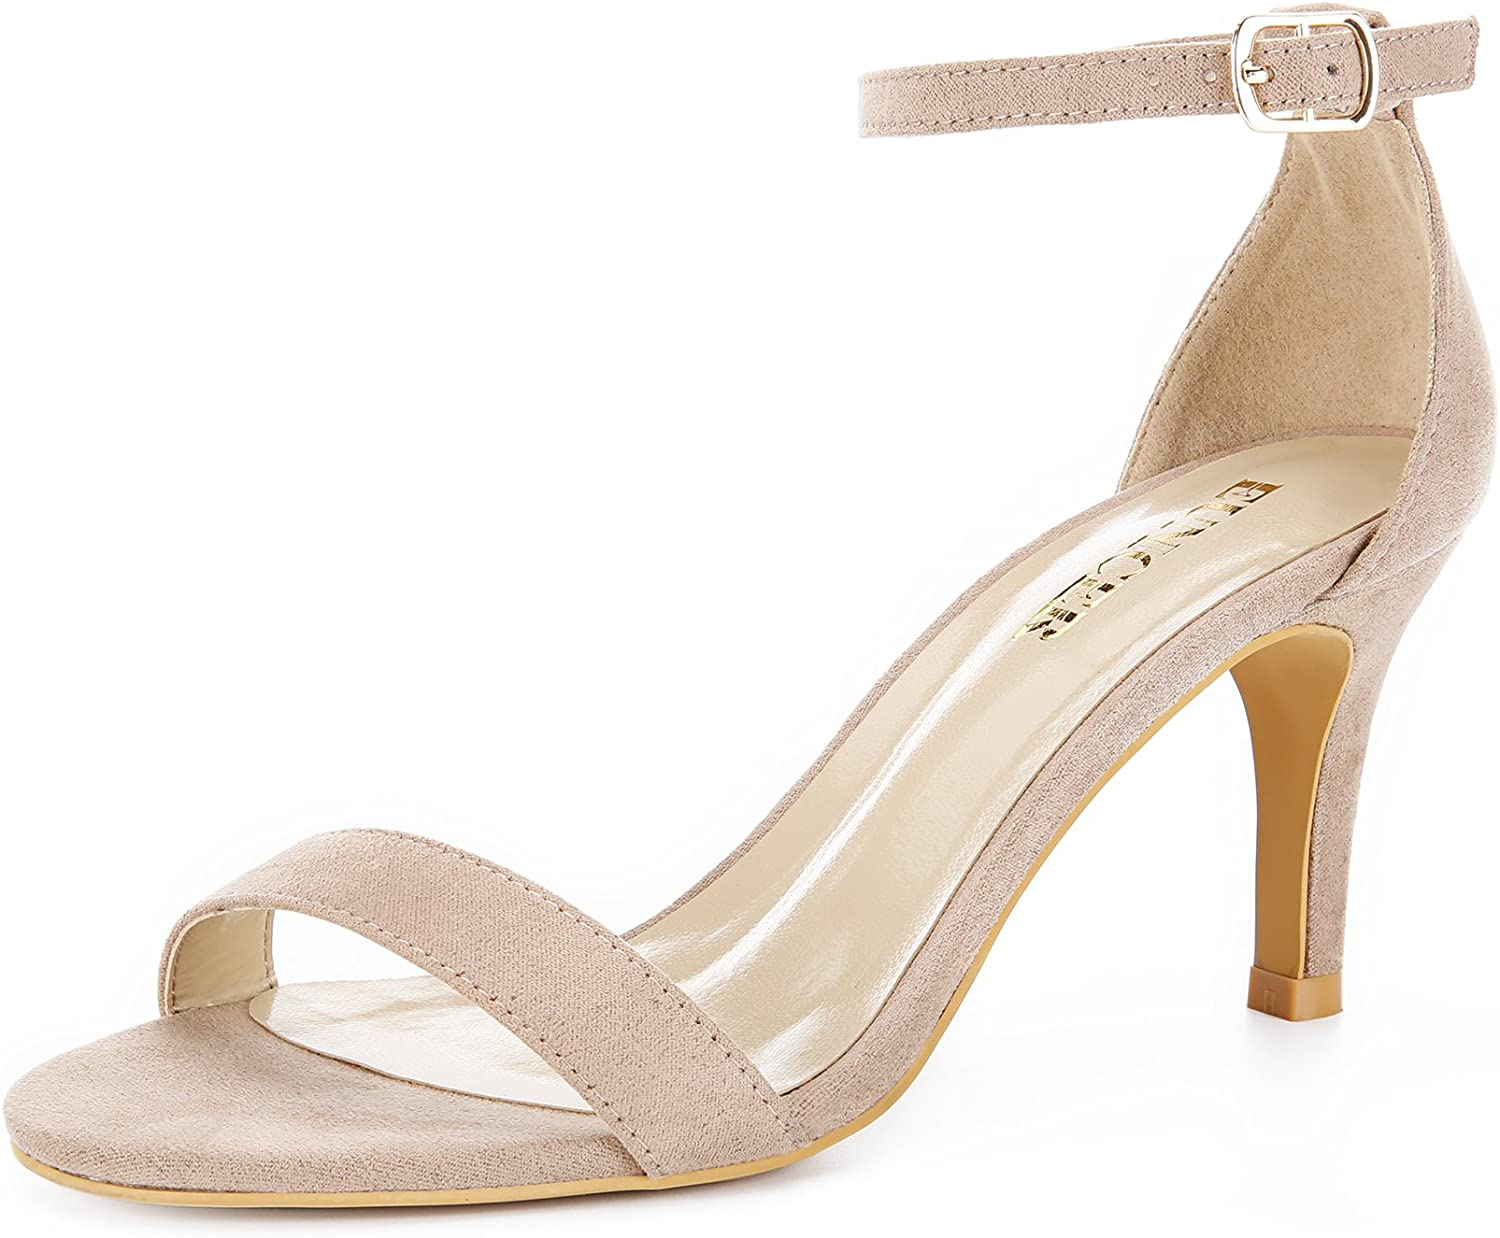 Eunicer Women's Open Toe Ankle Strap High Heel Stiletto Sandal Wedding Party shoes (Black and Nude)